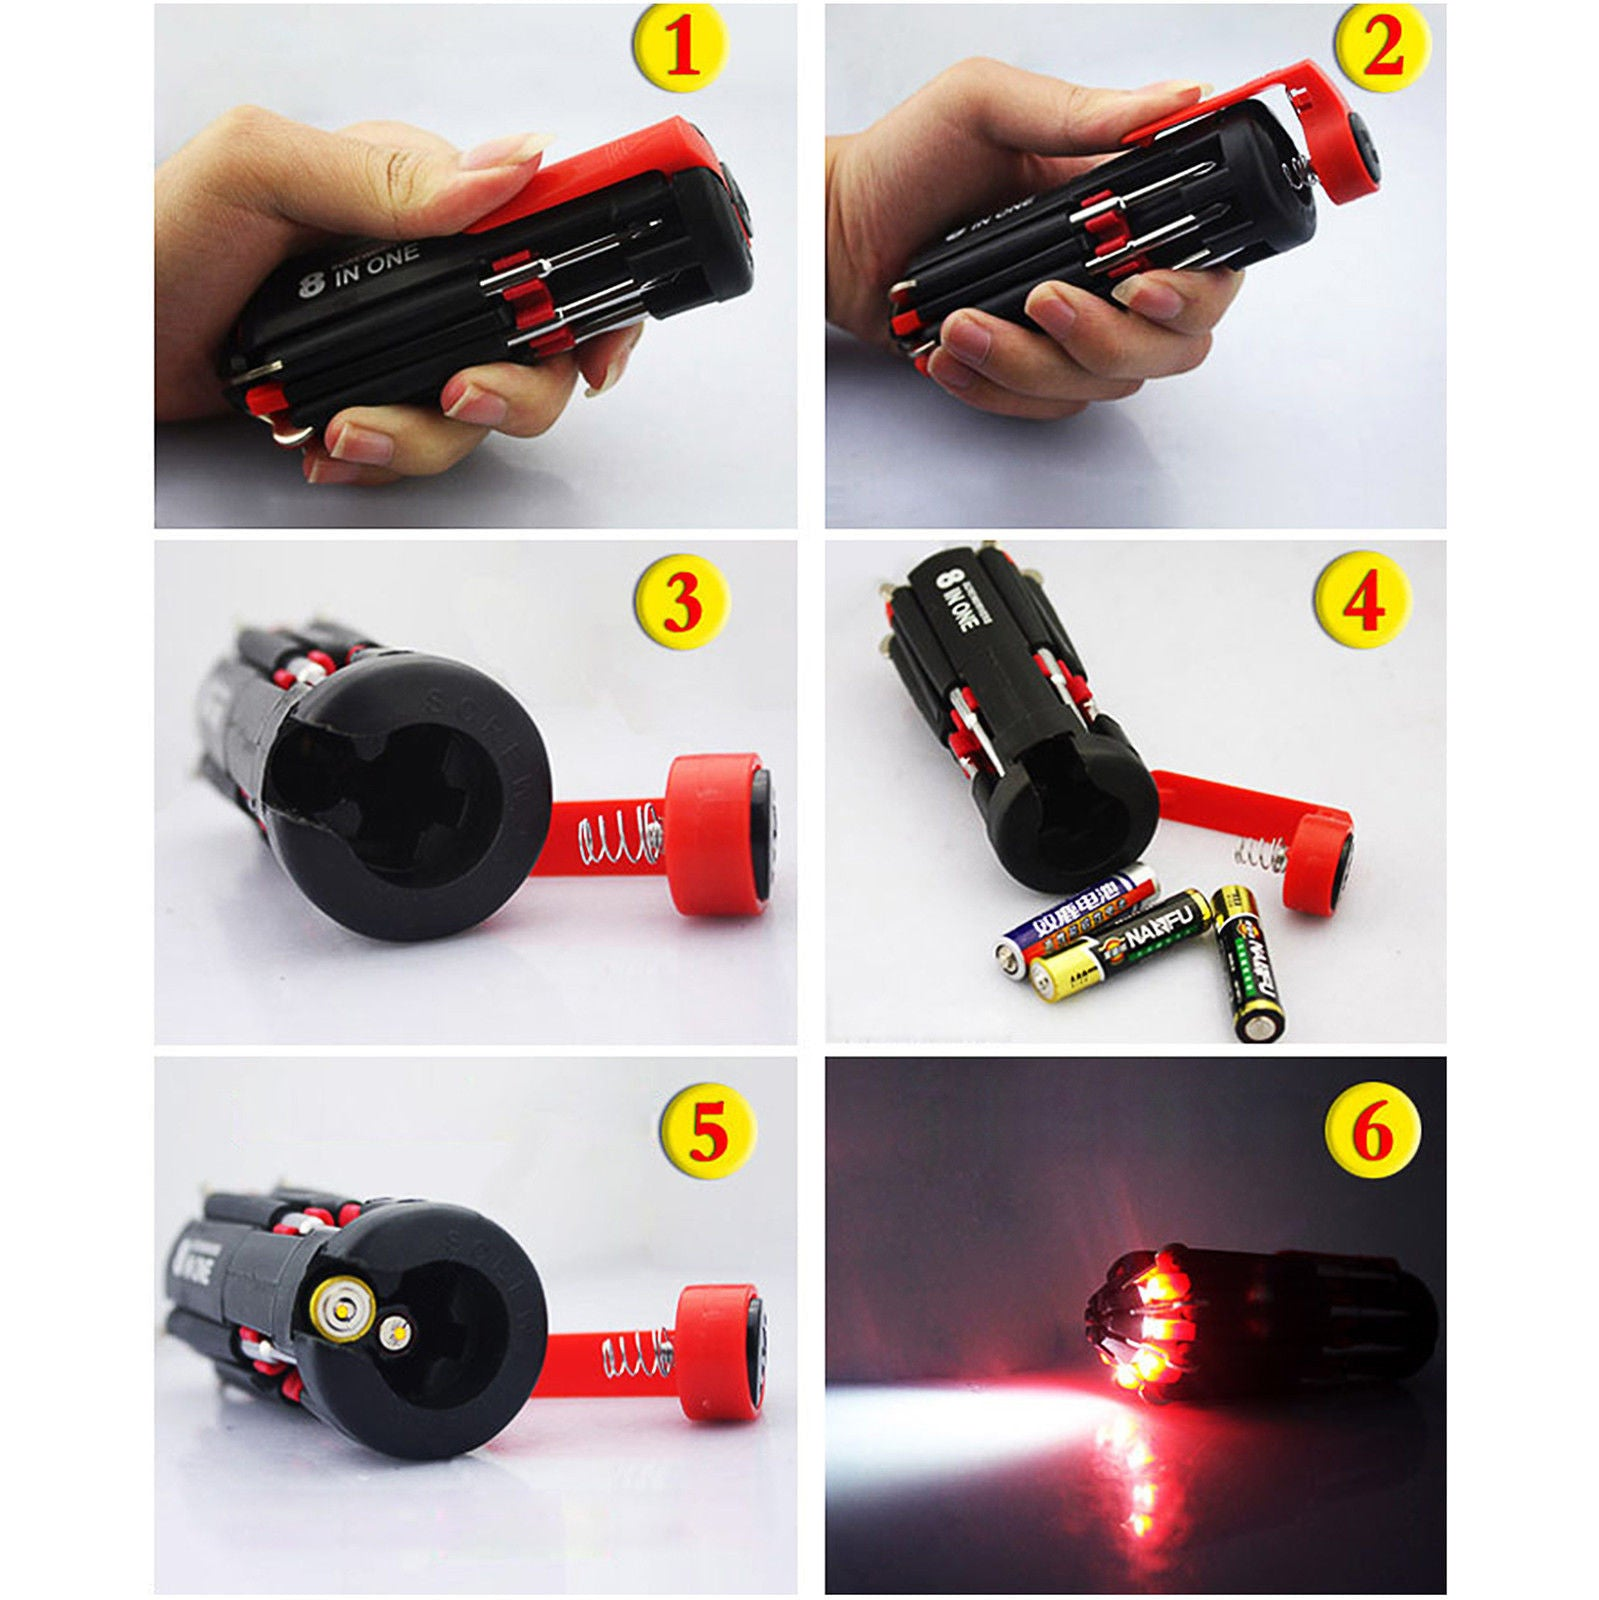 Spider 8 In 1 Multi-Screwdriver Flashlight - alltrolite